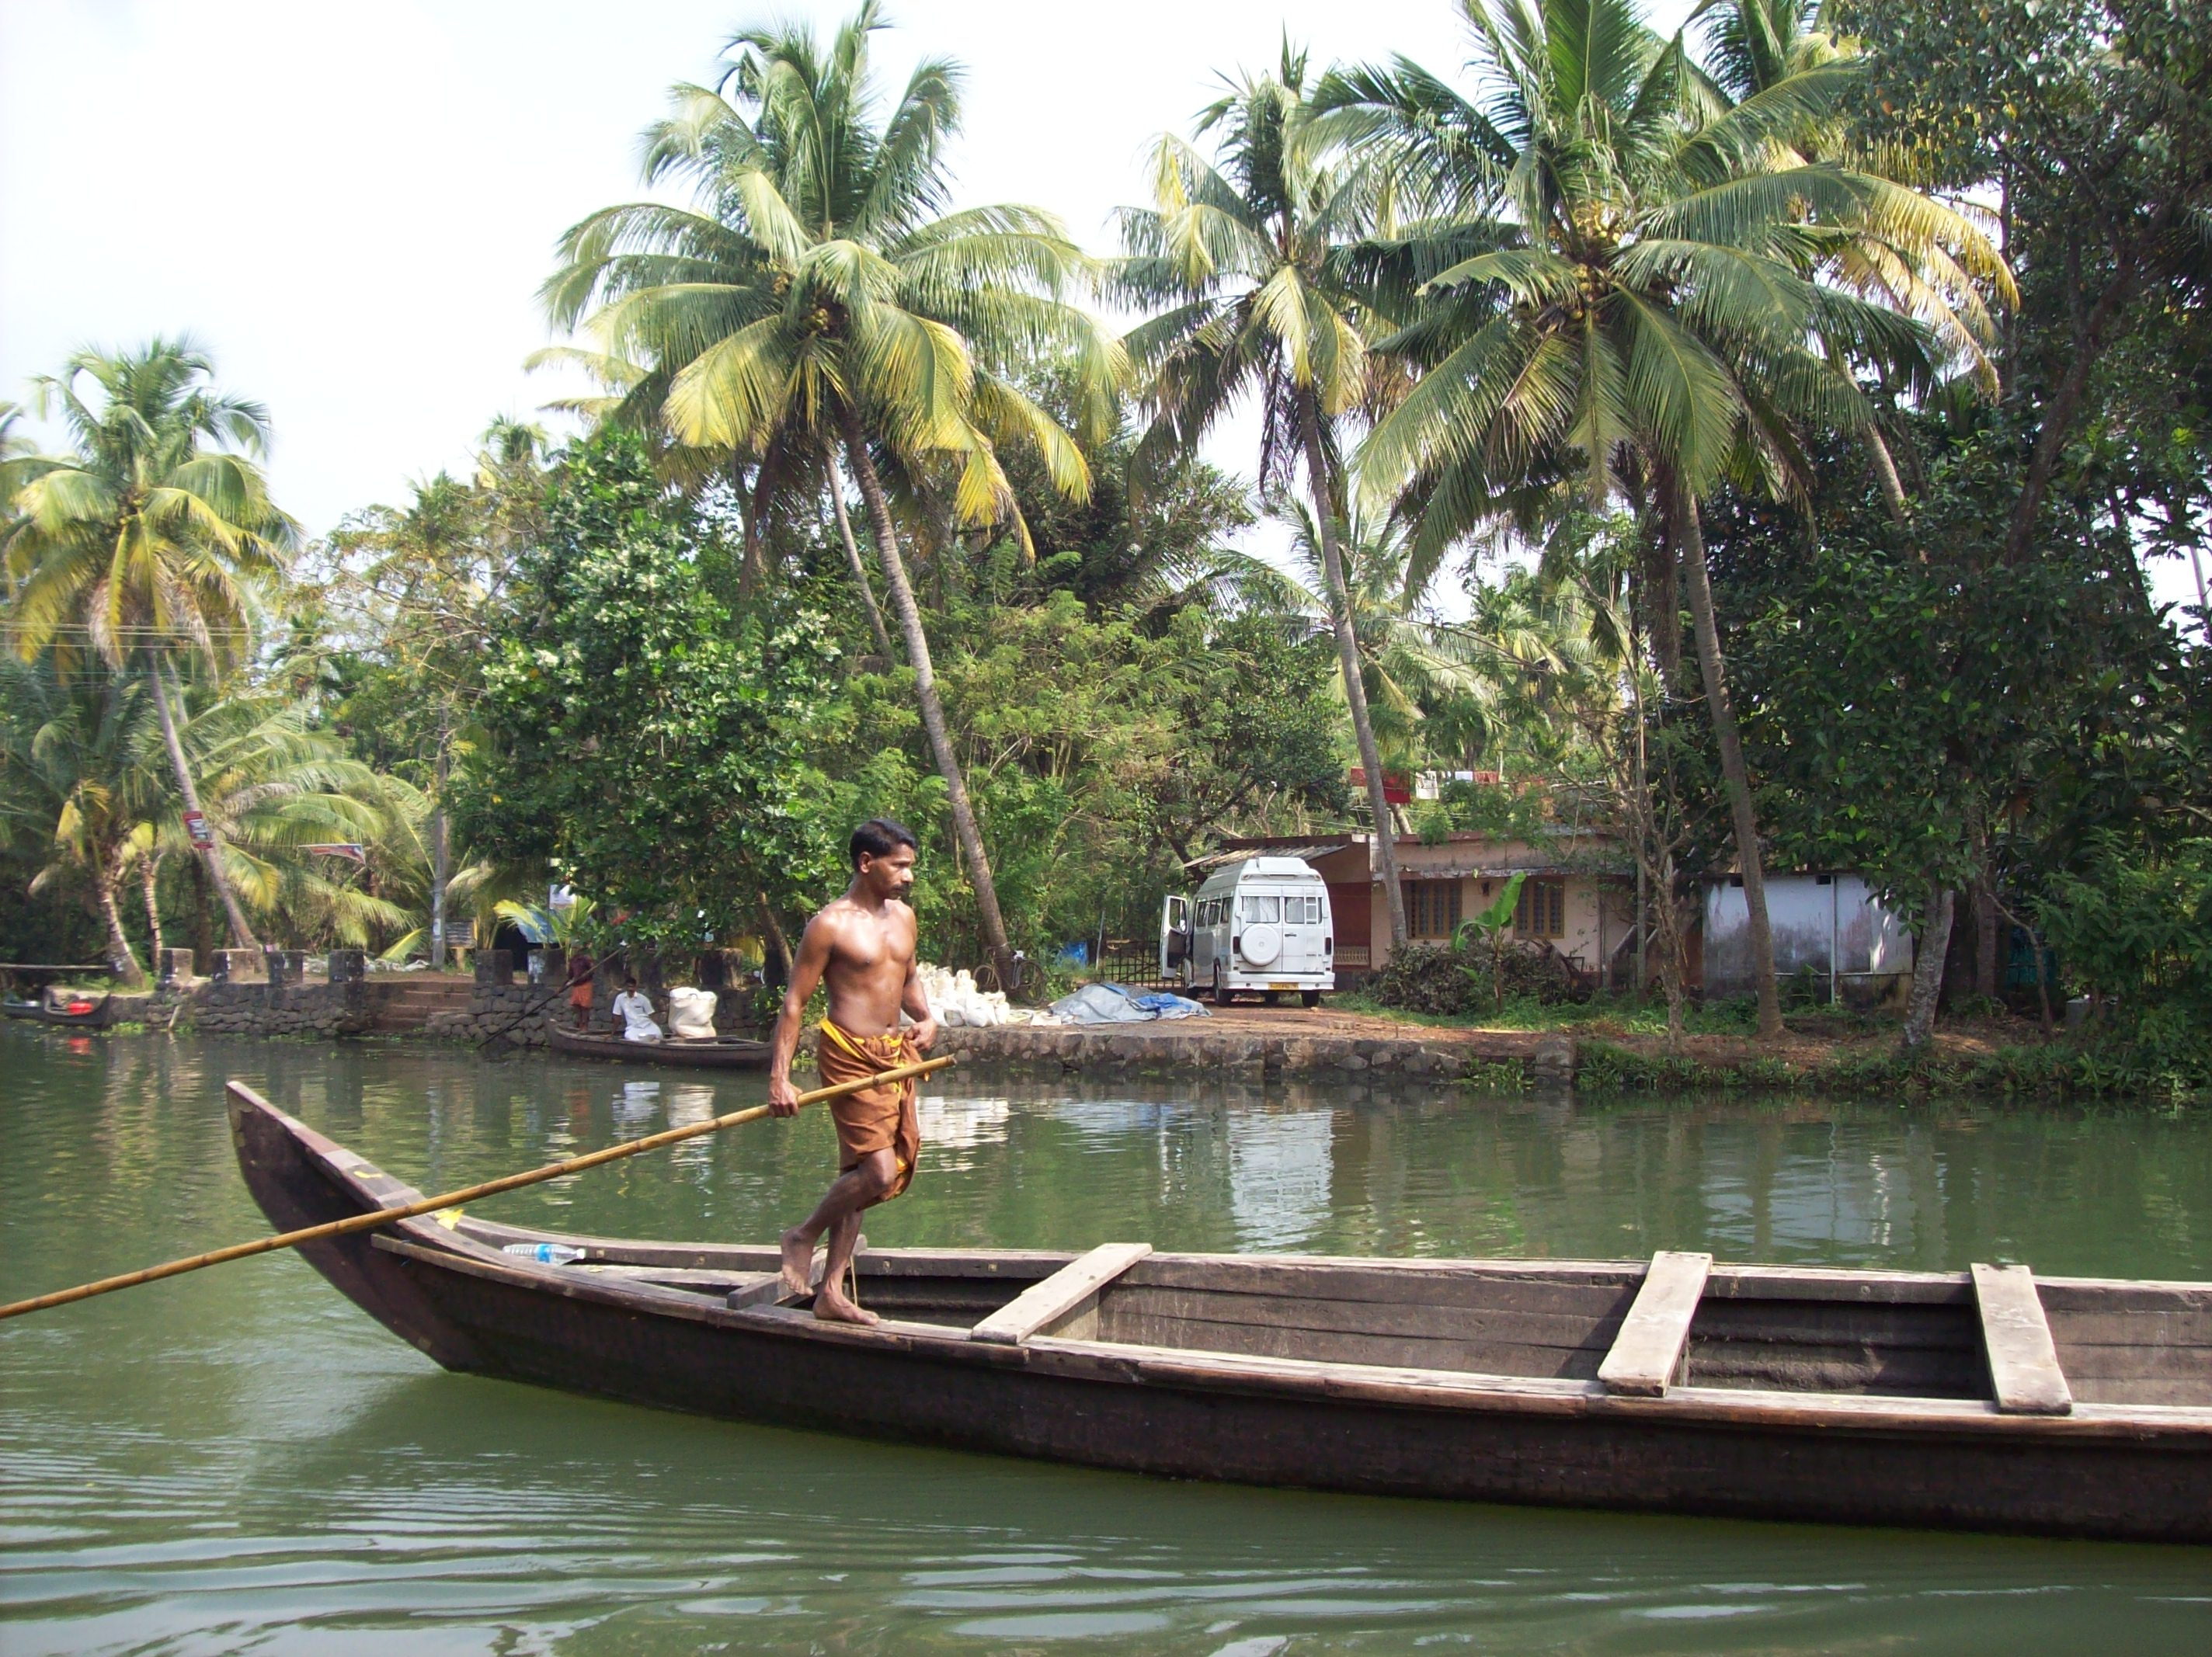 Indian Boating, Boat, India, River, Transport, HQ Photo